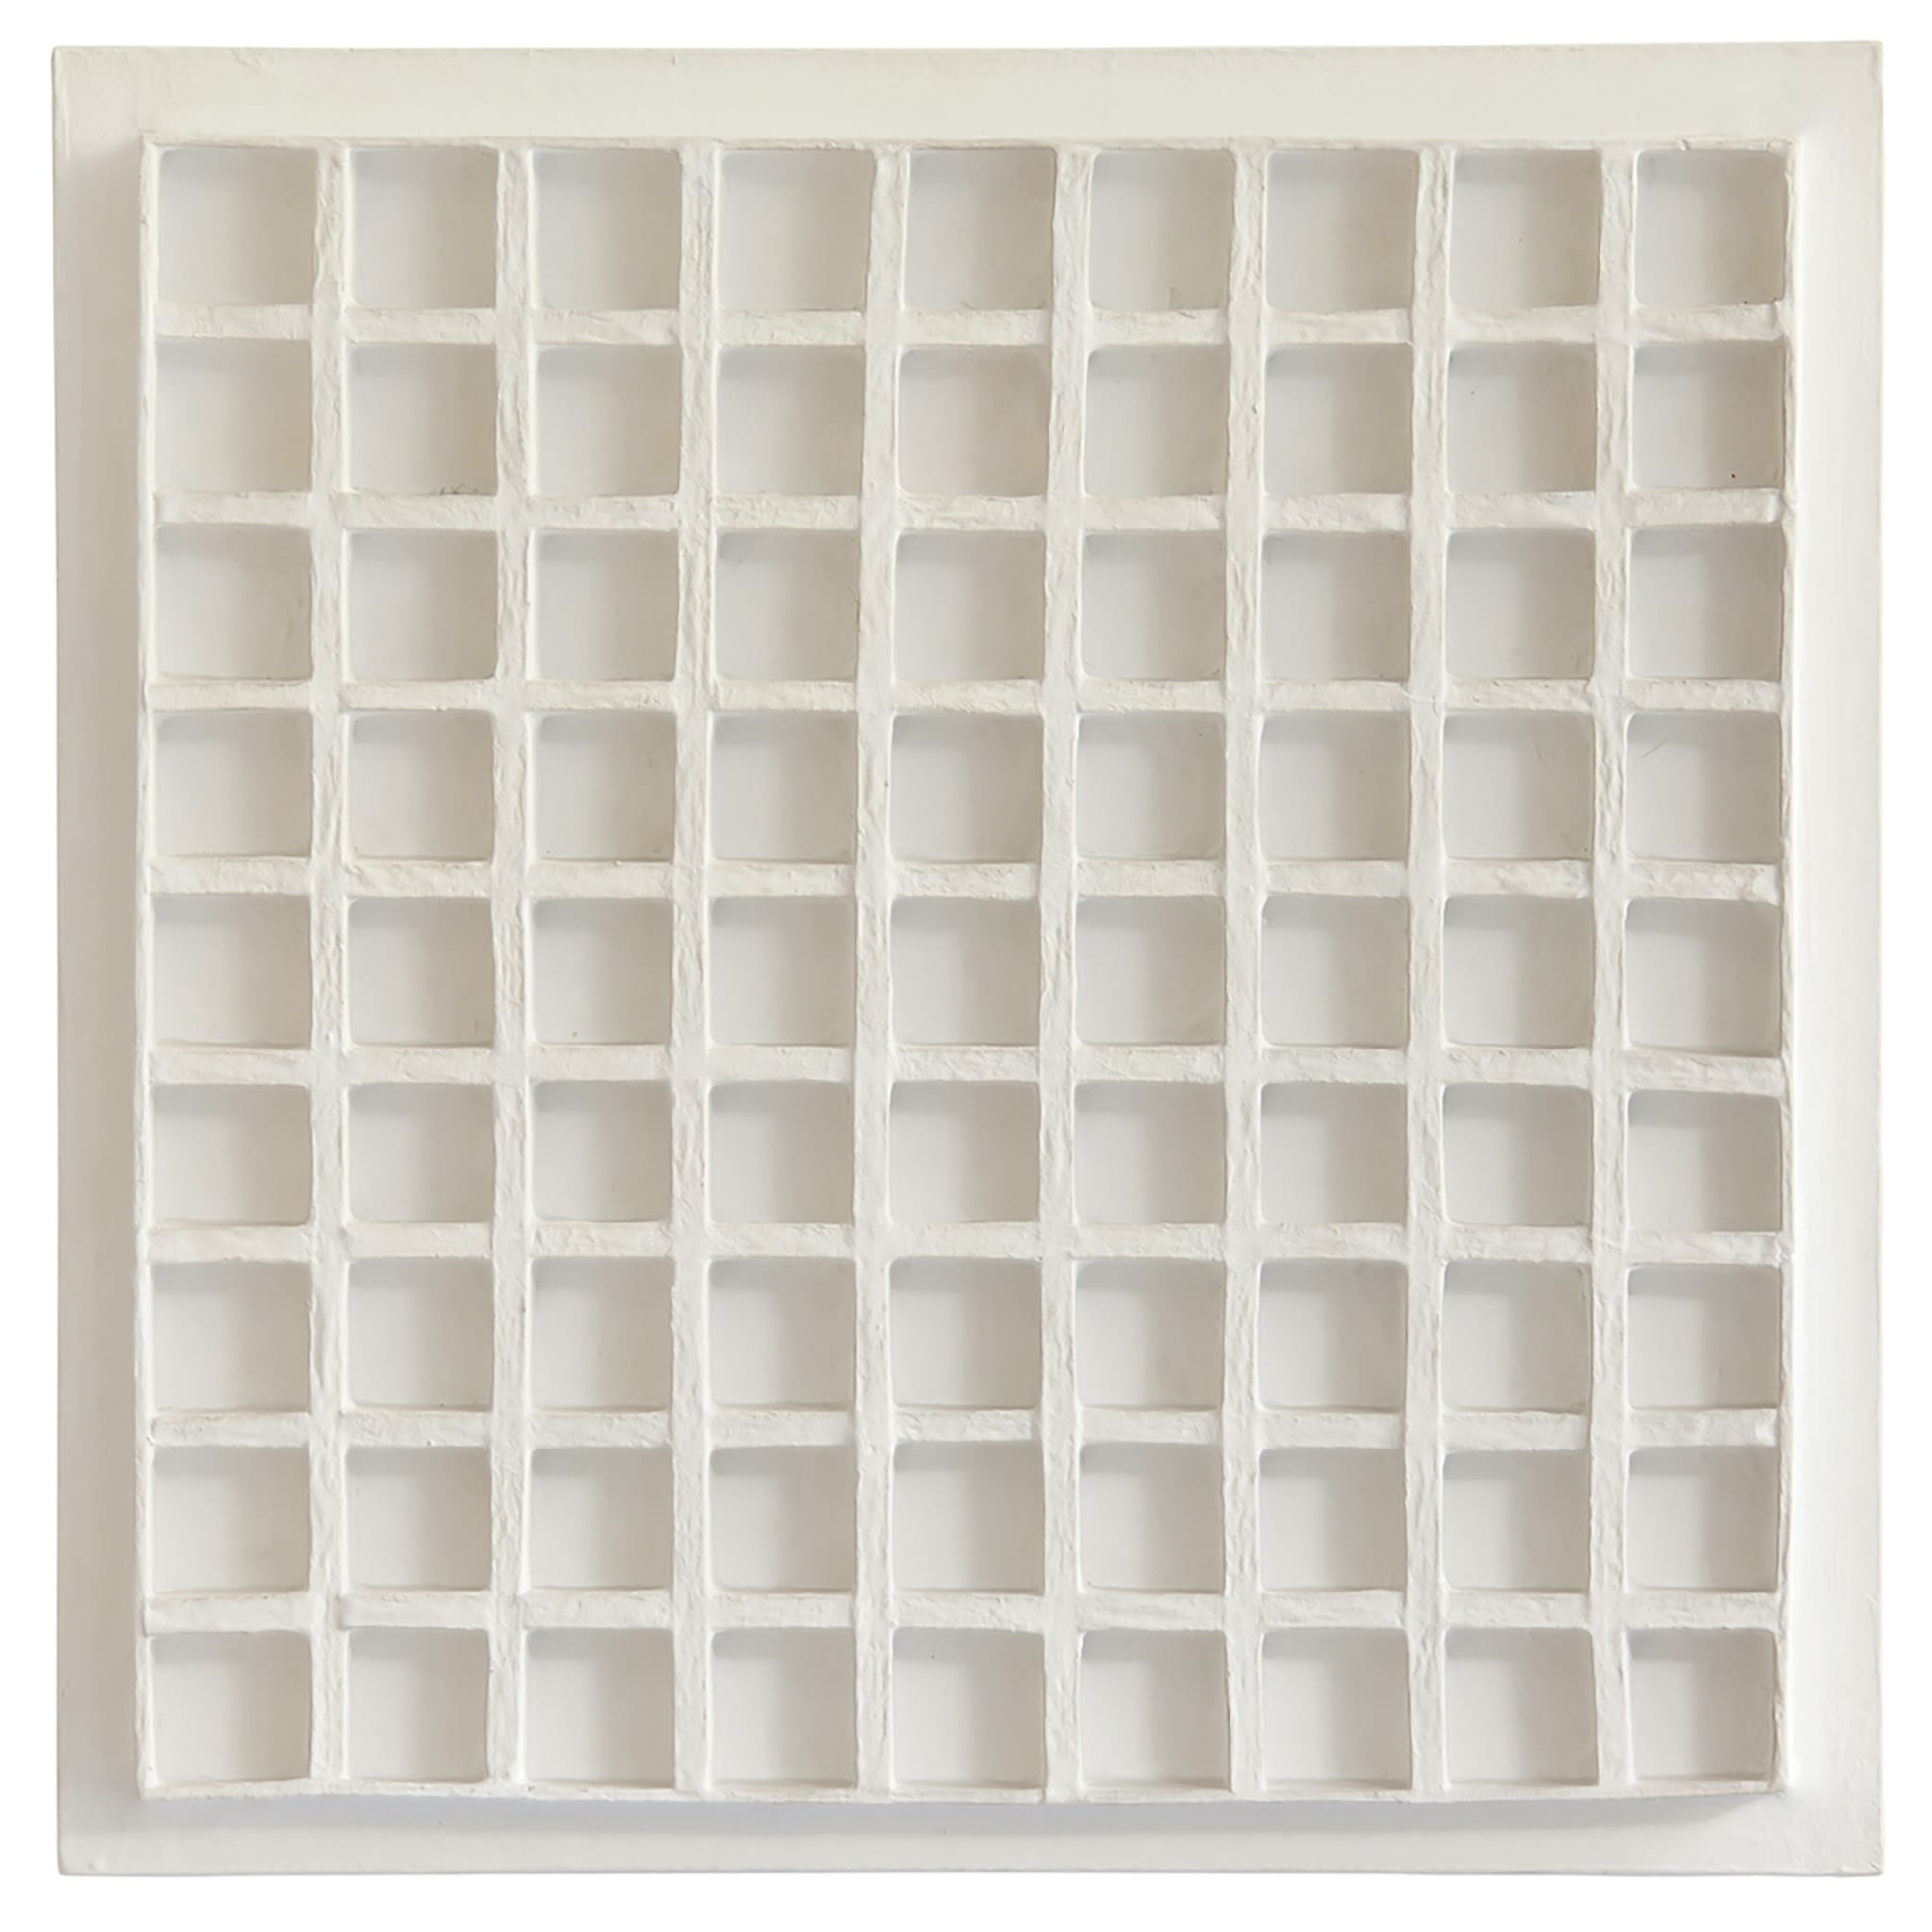 "<span class=""link fancybox-details-link""><a href=""/artists/100-jan-schoonhoven/works/11041-jan-schoonhoven-r75-24-1975/"">View Detail Page</a></span><div class=""artist""><span class=""artist""><strong>JAN SCHOONHOVEN</strong></span></div>